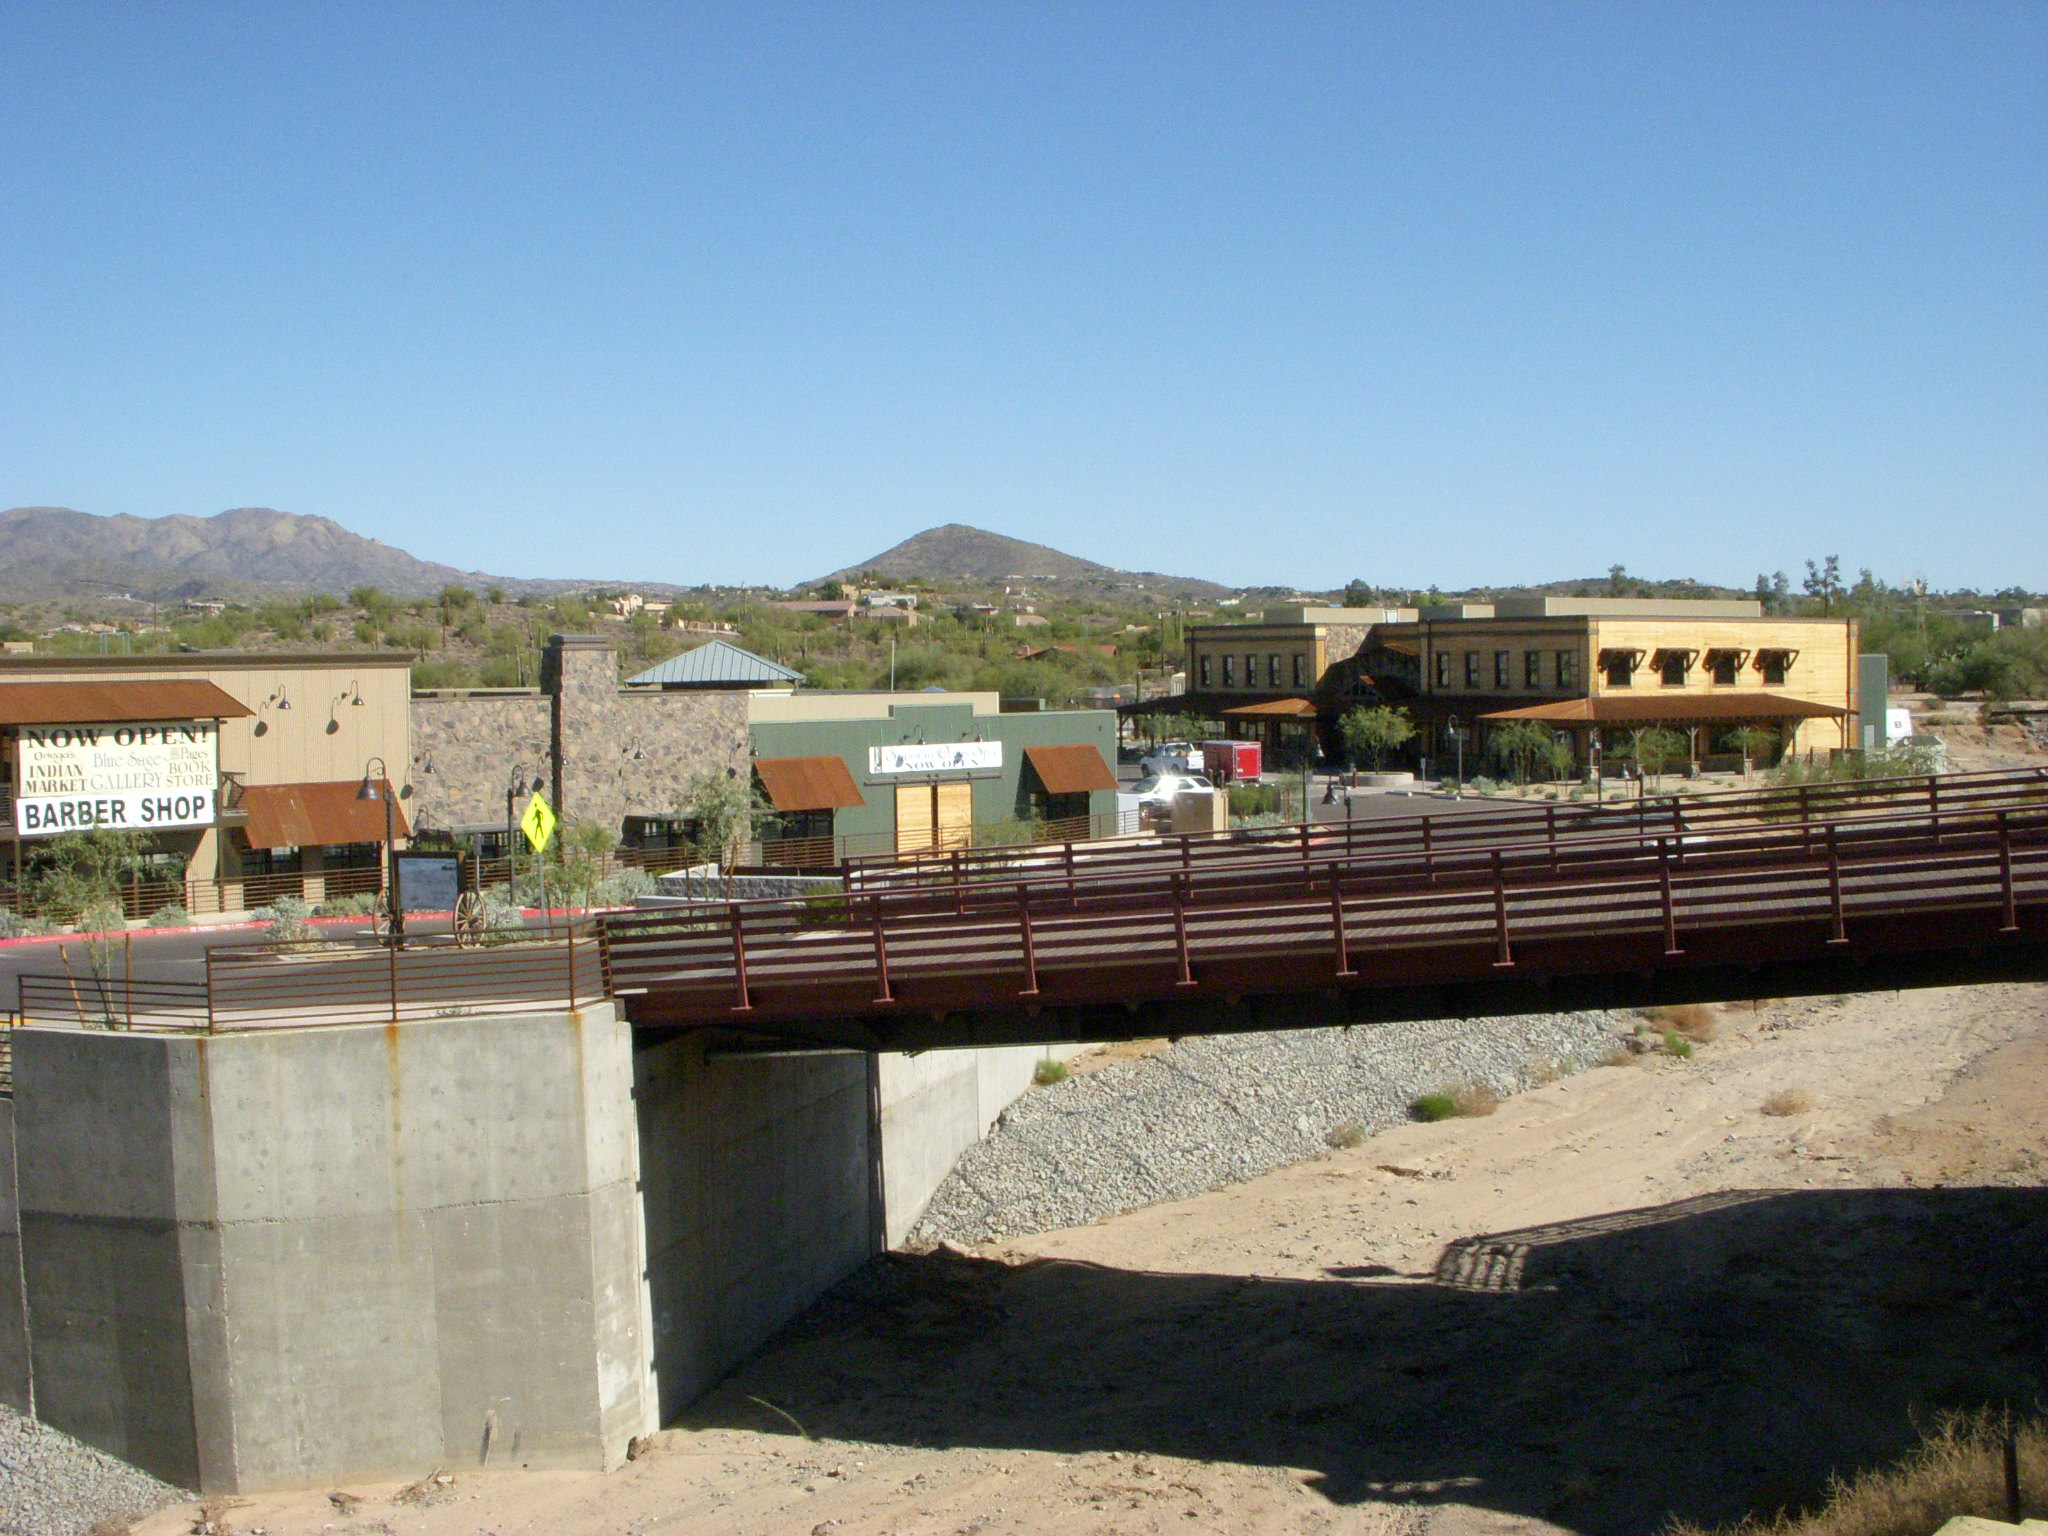 A bridge going over a wash at Stagecoach Village.